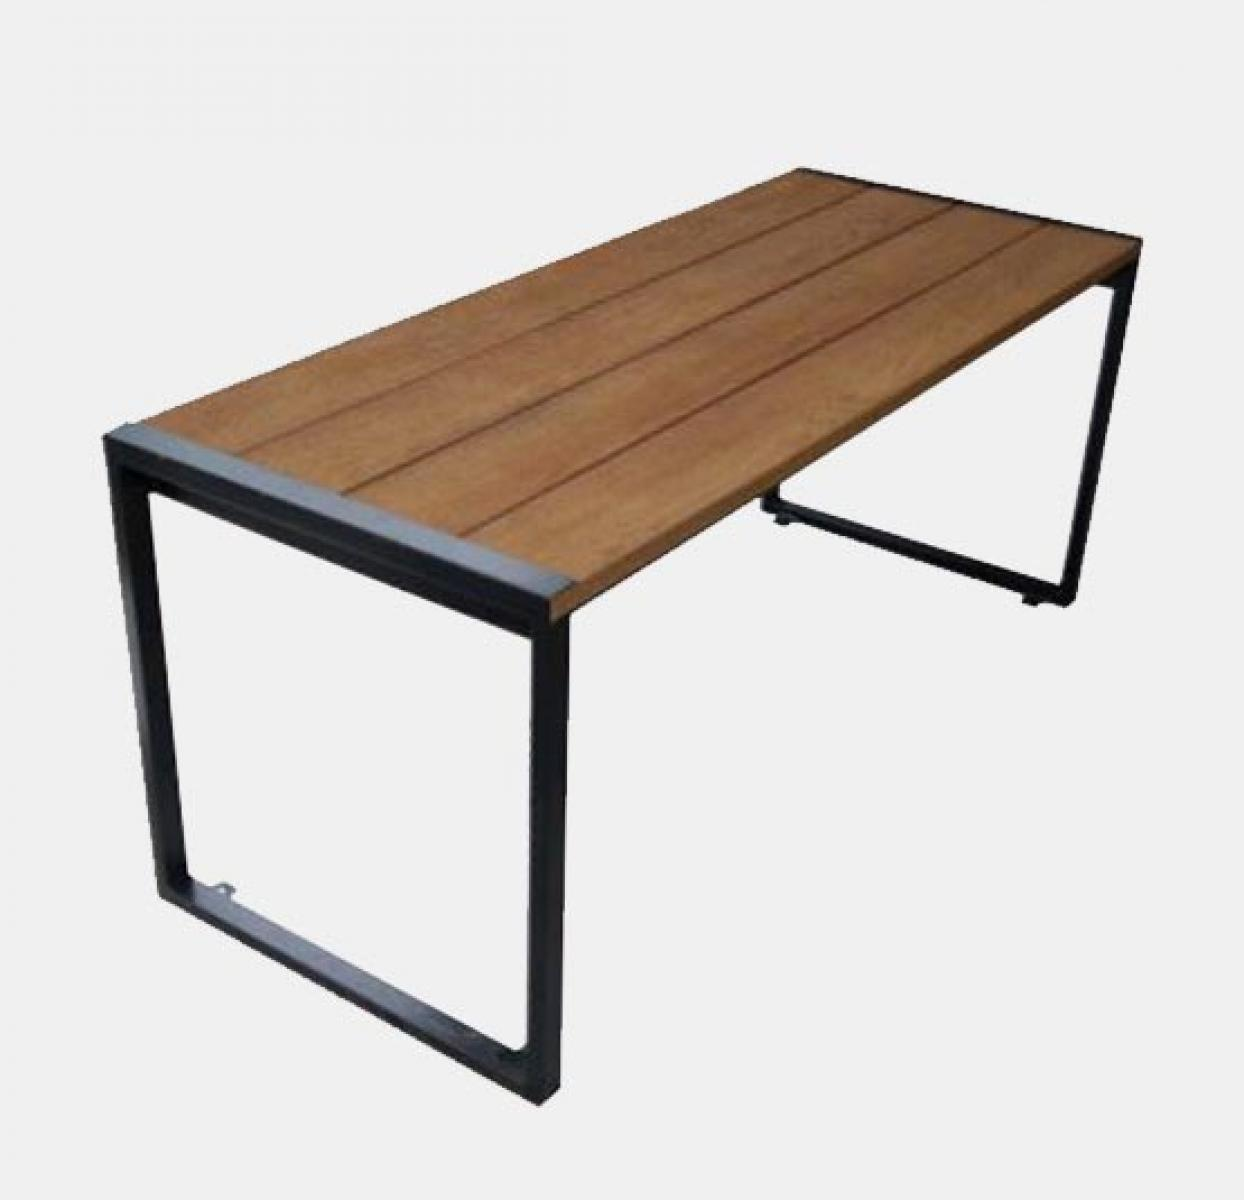 Mill Linea Table 1800x717mm Coppered Uhs